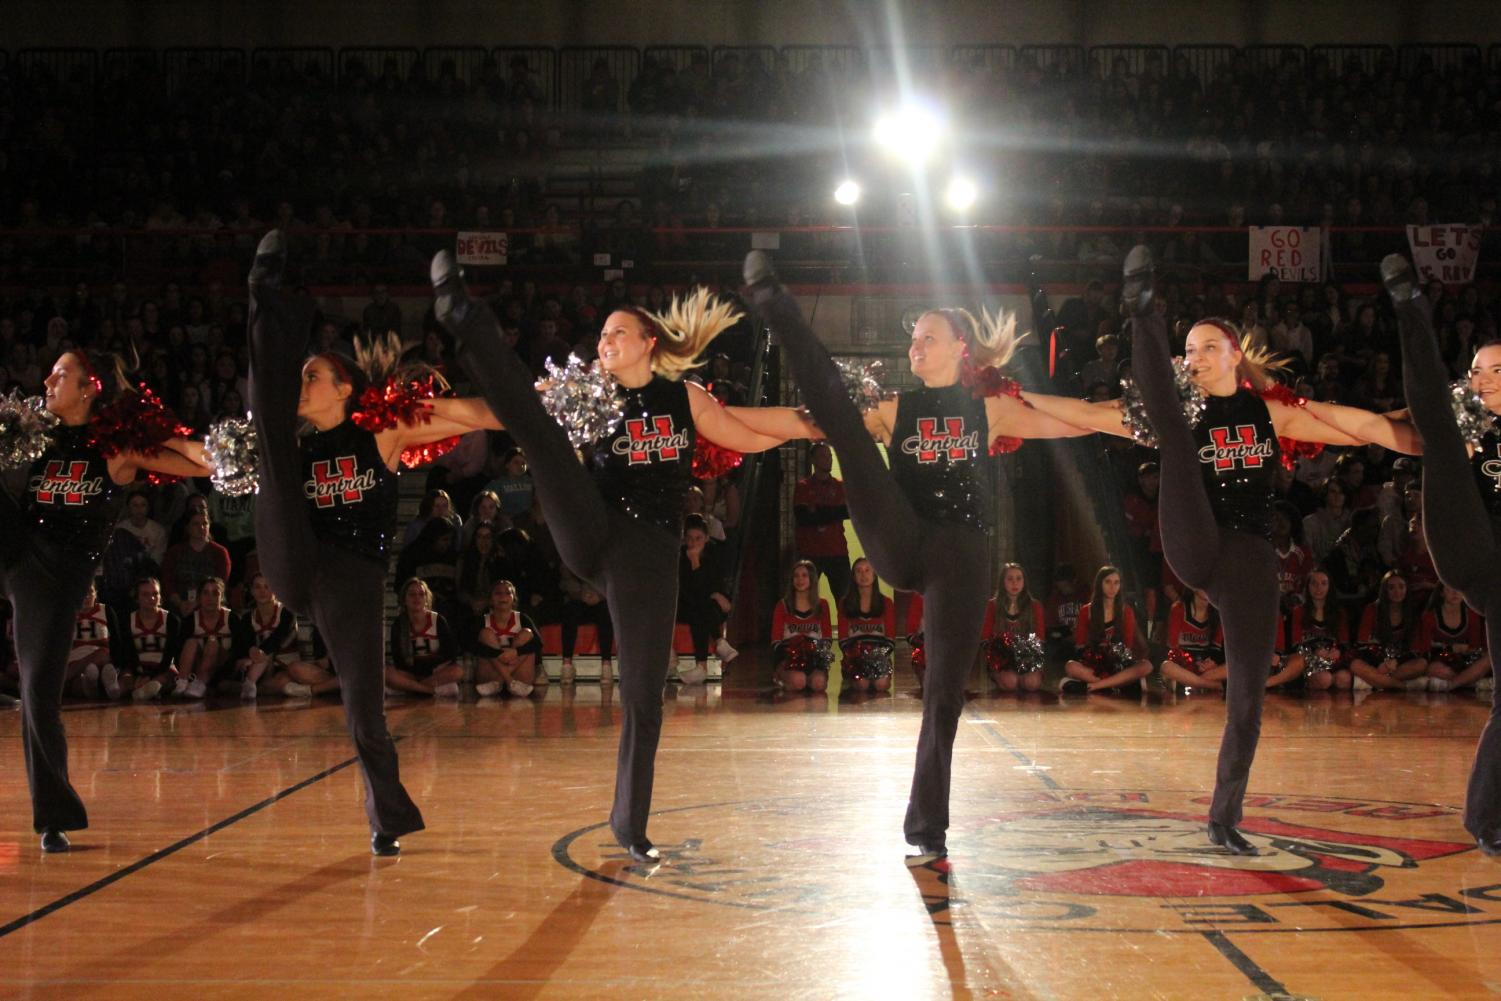 The+varsity+Pommers+performed+their+traditional+kickline+in+front+of+the+cheering+crowd.+